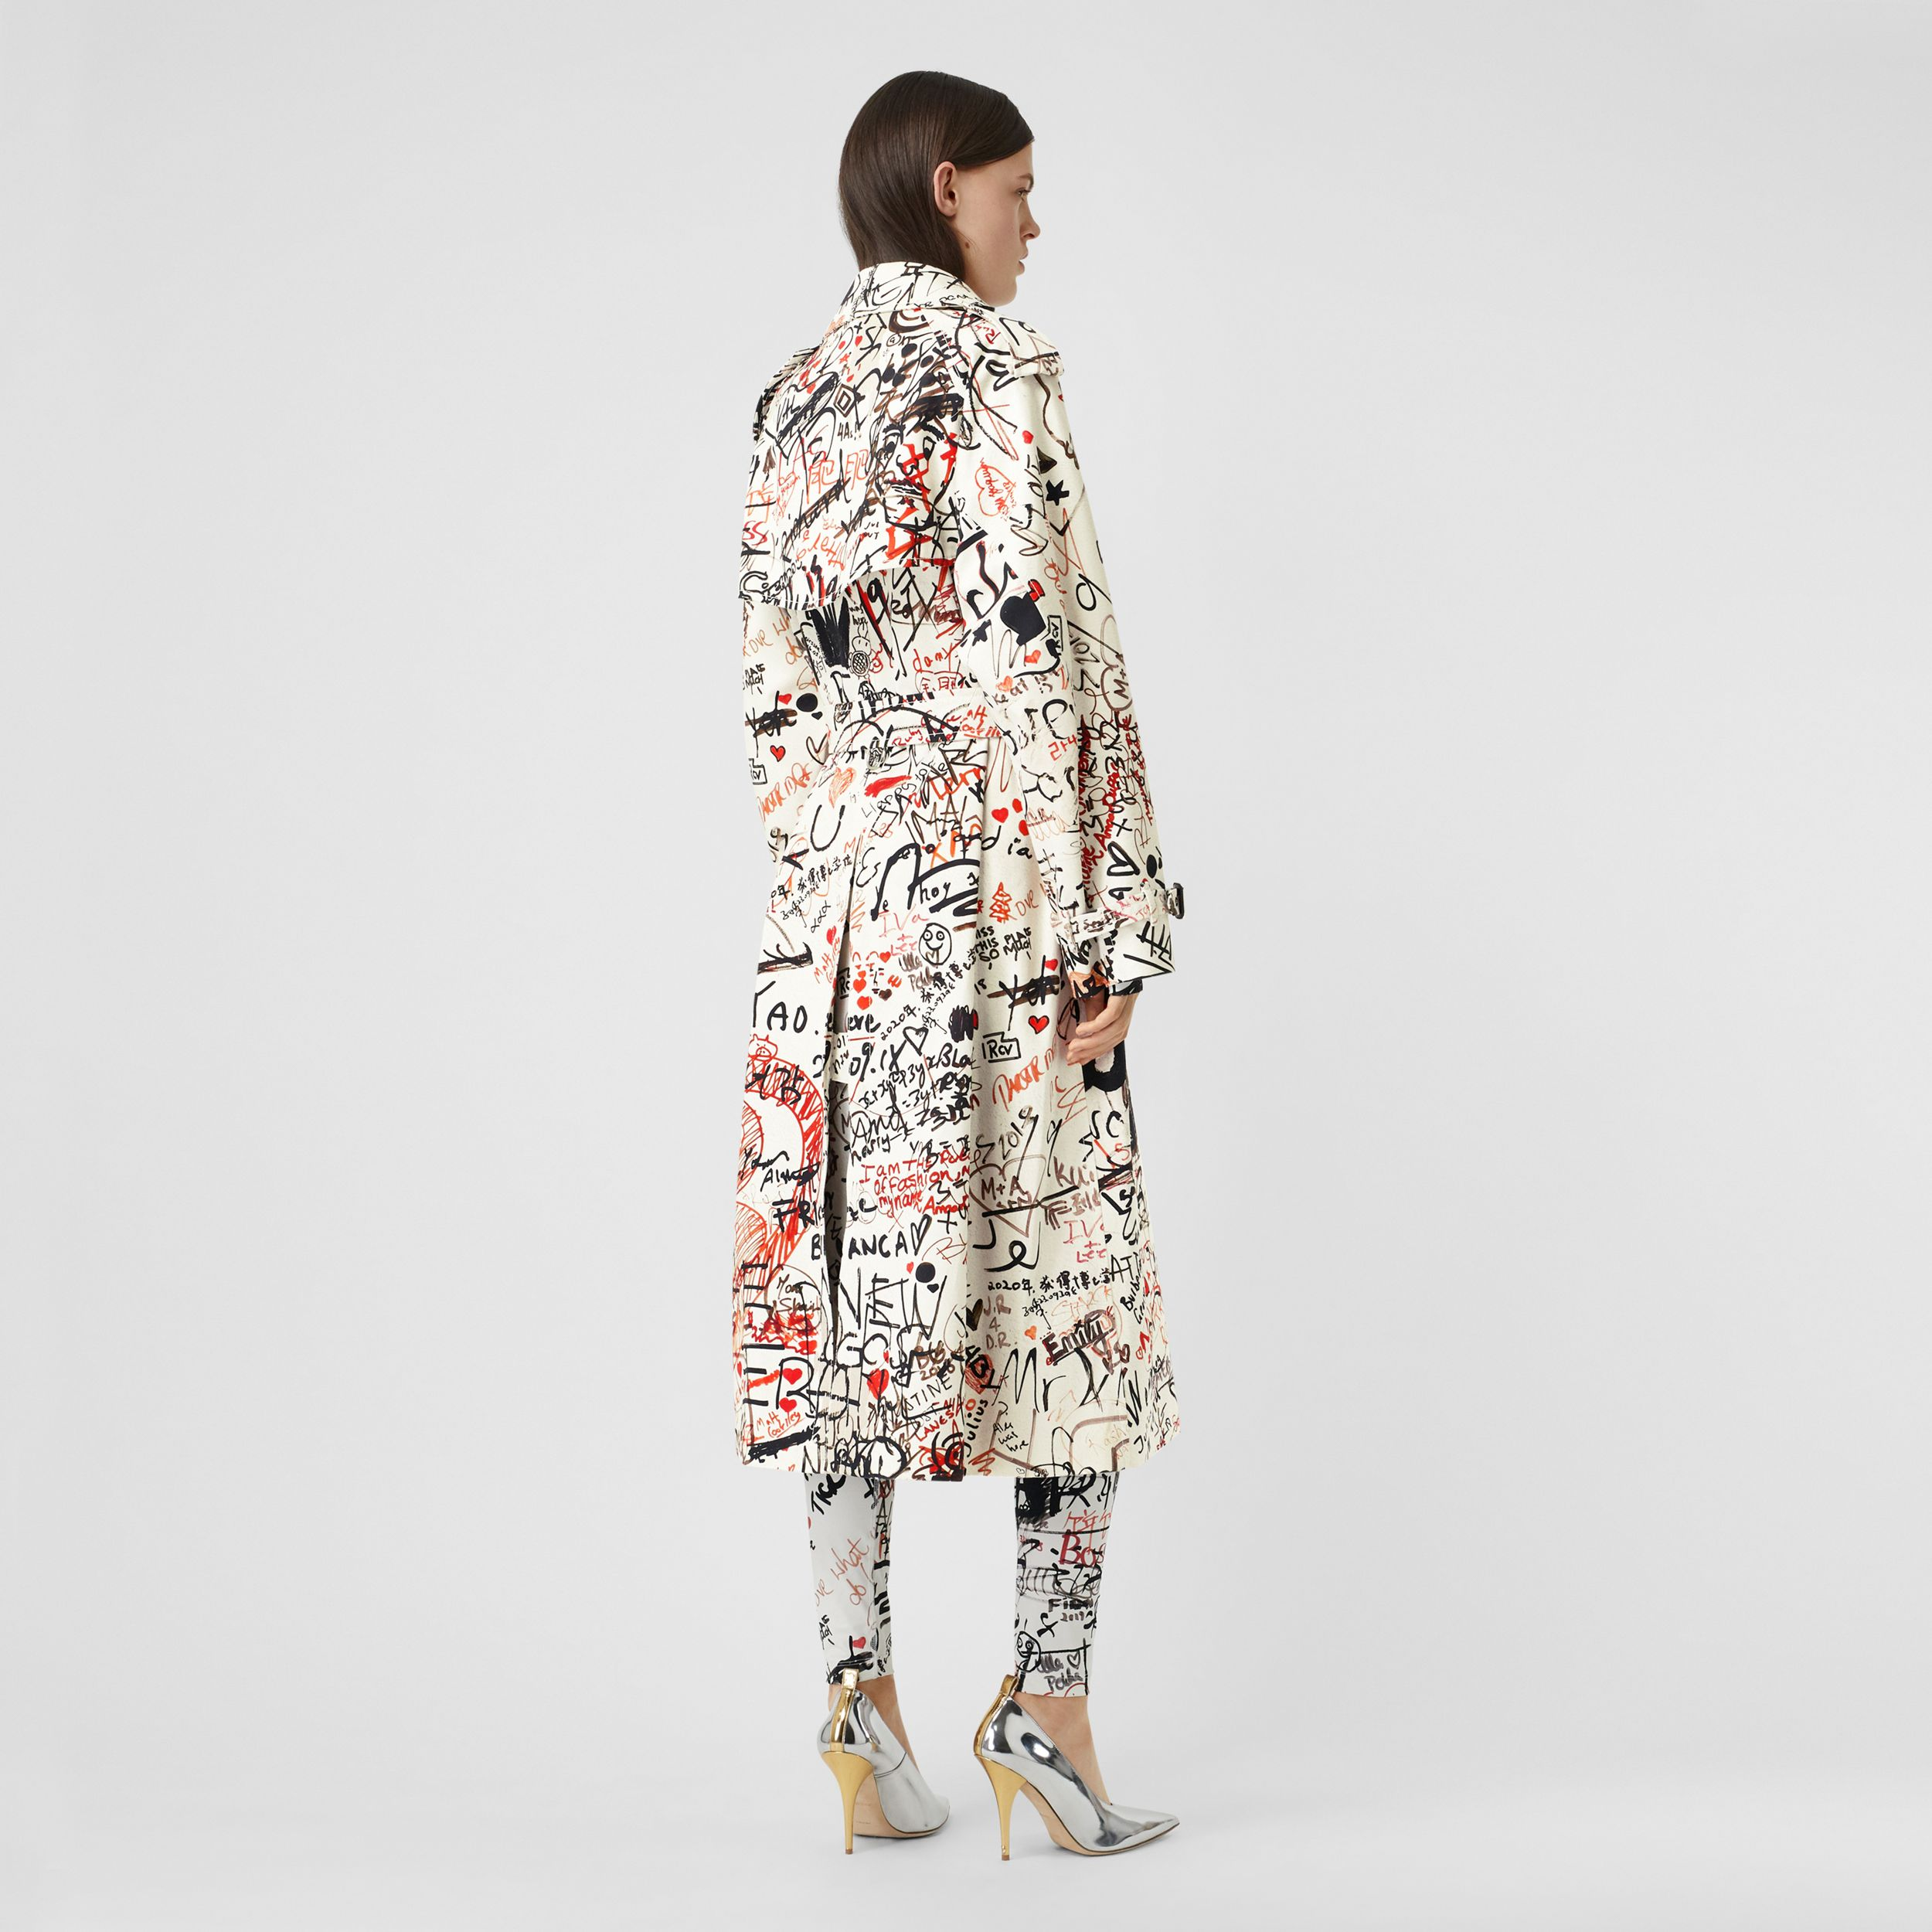 Graffiti Print Cotton Gabardine Trench Coat in Black - Women | Burberry - 3